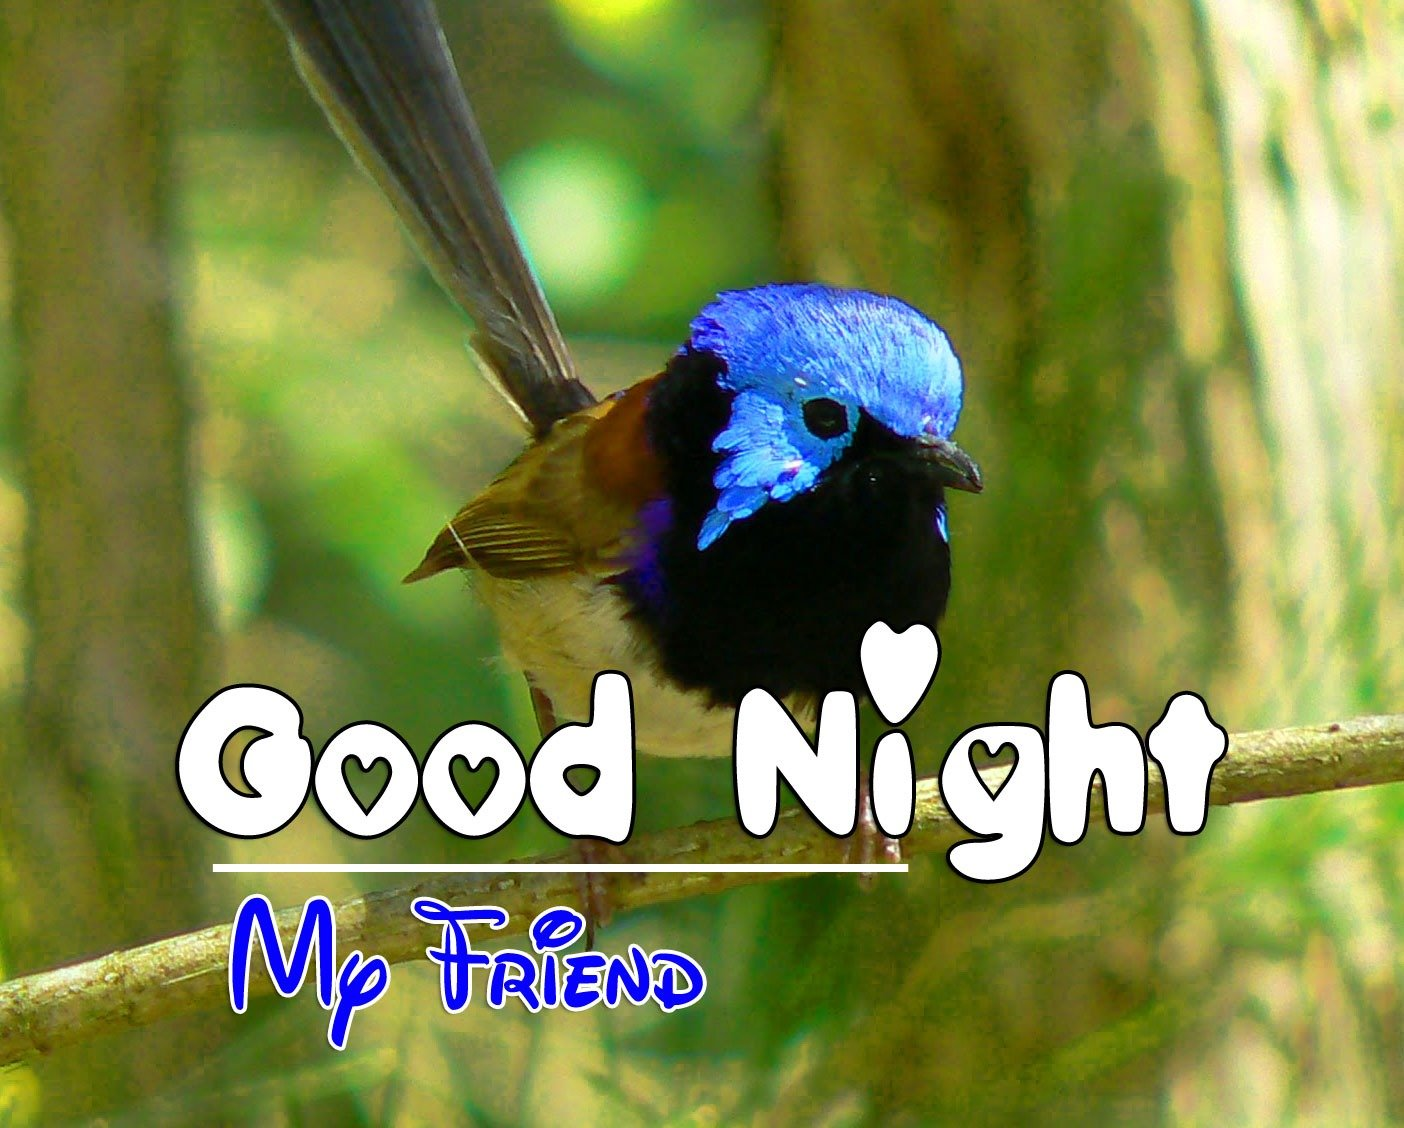 Good Night Photo For Facebook